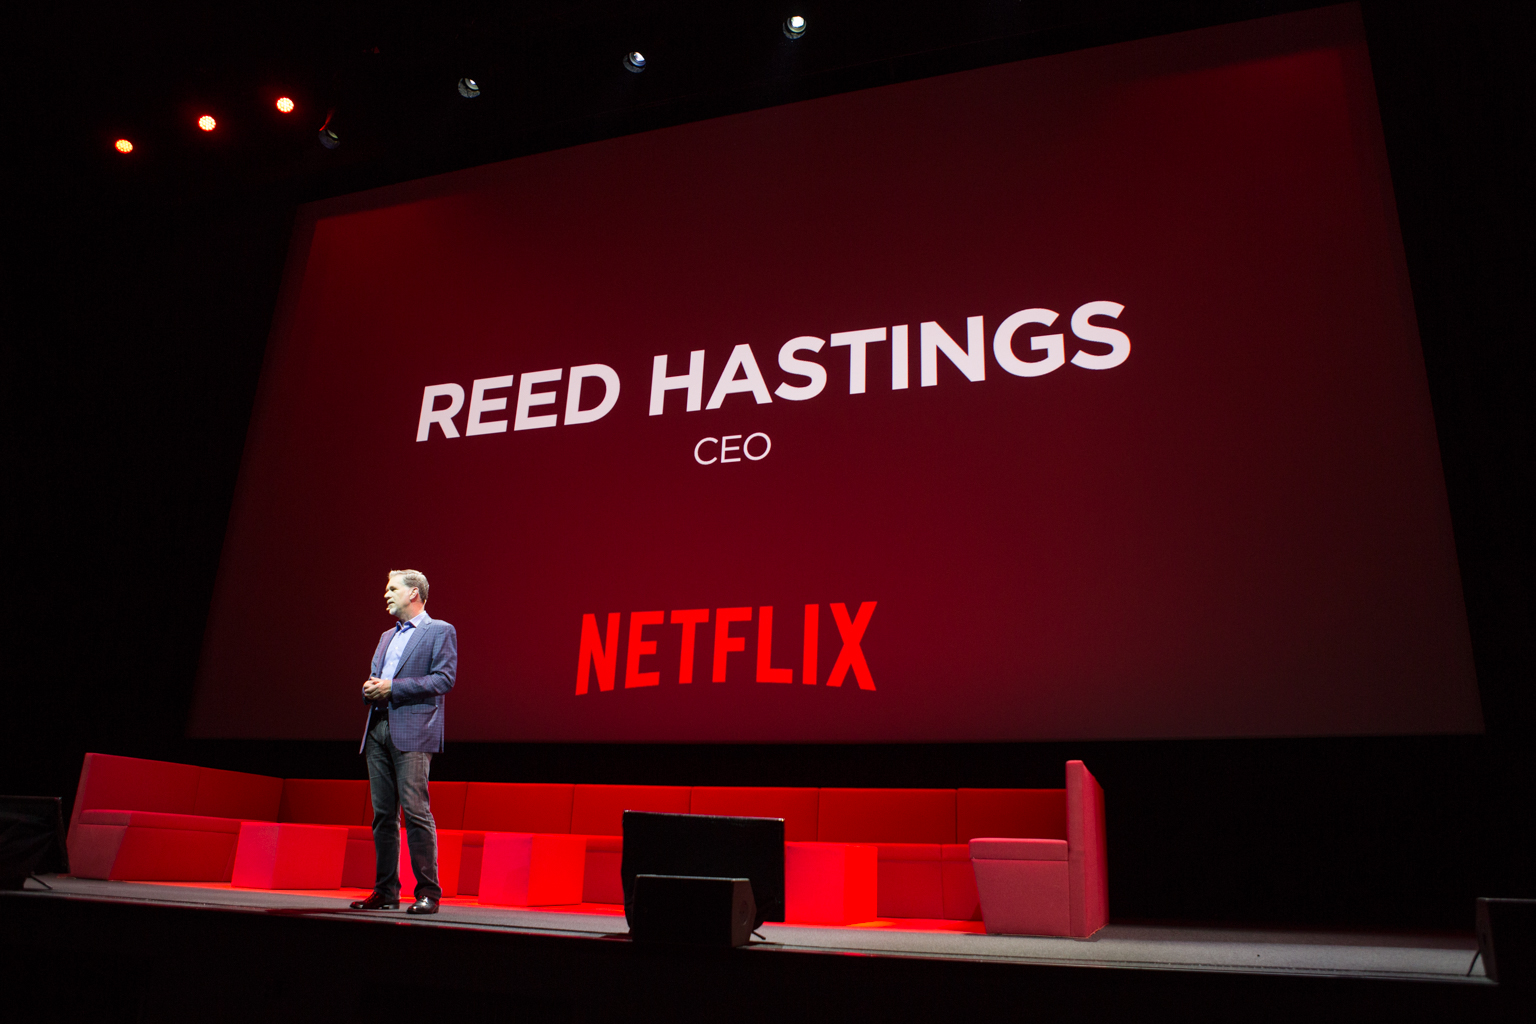 Netflix Event, Paris 11.04.2016 Reed Hastings Intro Reed Hastings